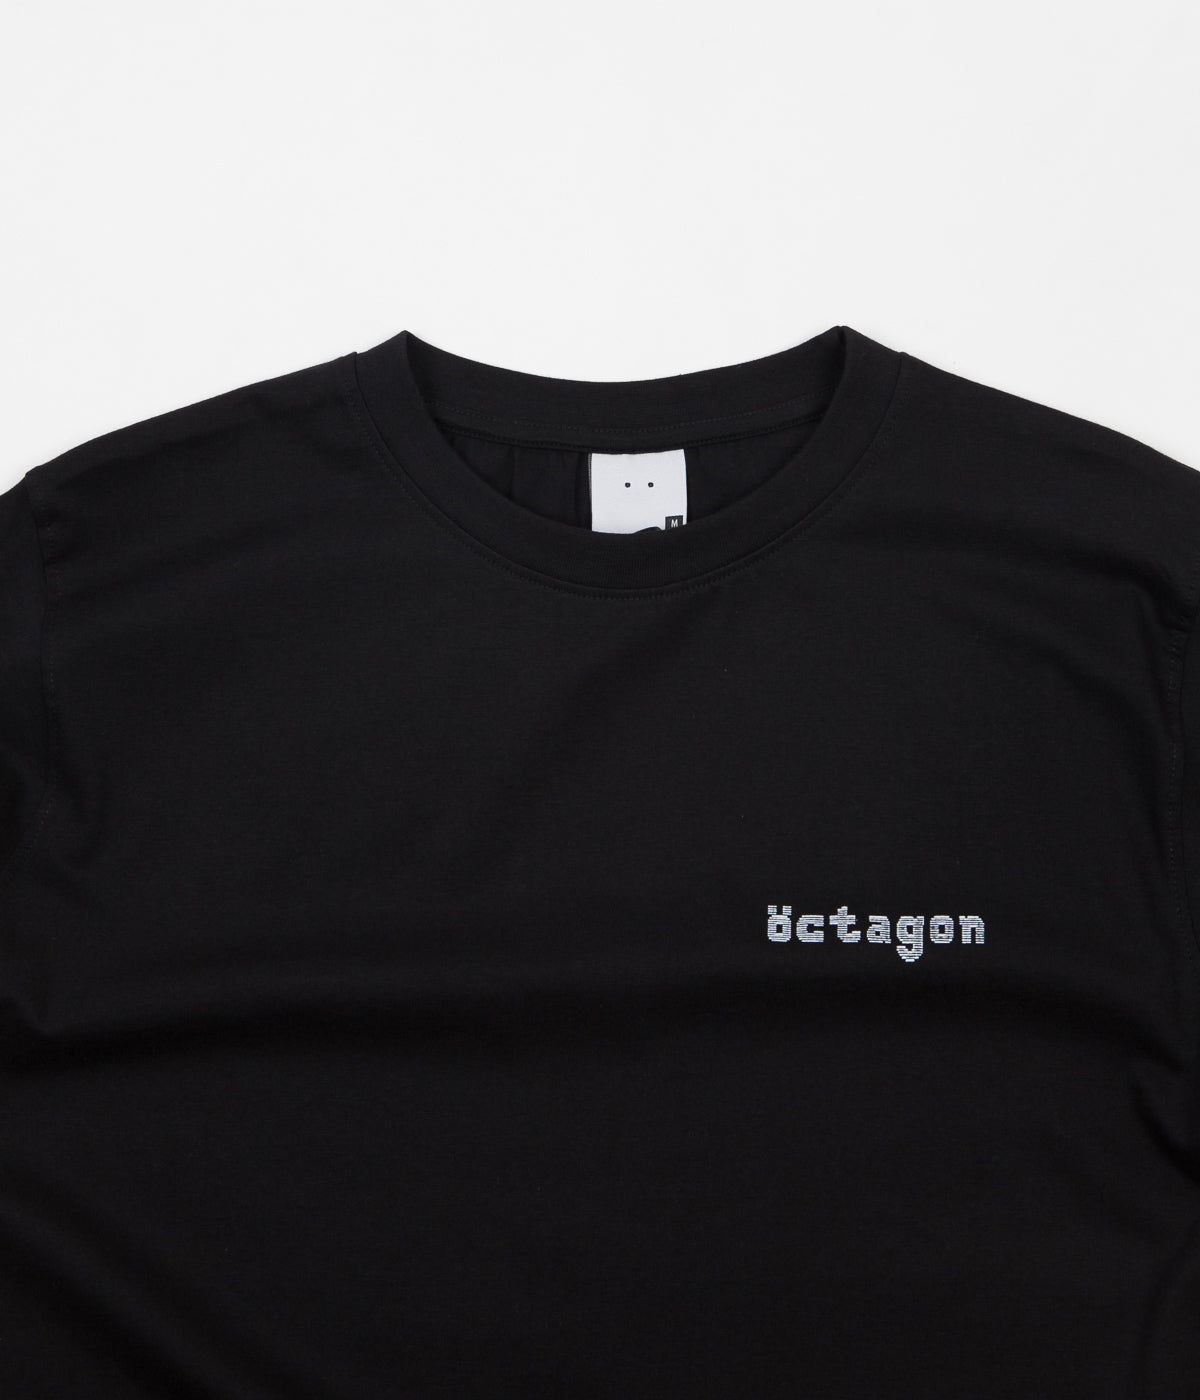 Öctagon ASCII T-Shirt - Black